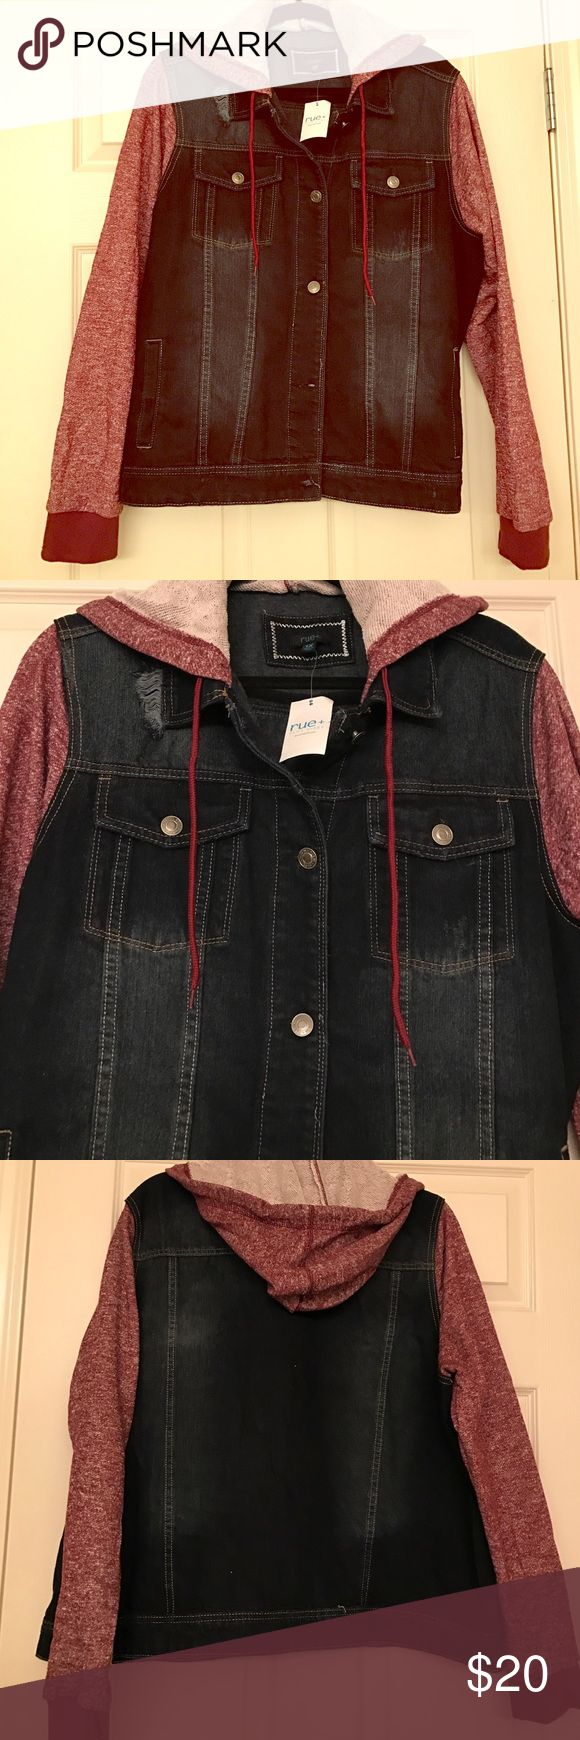 """✨FLASH SALE✨ NWT Hooded Jean Jacket! - plus Cute, hooded jean jacket from Rue 21!  Hood and sleeves are a heavier sweatshirt material.   Denim has a little of that """"destroyed"""" look.   Adorable coat, just doesn't fit me right. Rue 21 Jackets & Coats Jean Jackets"""